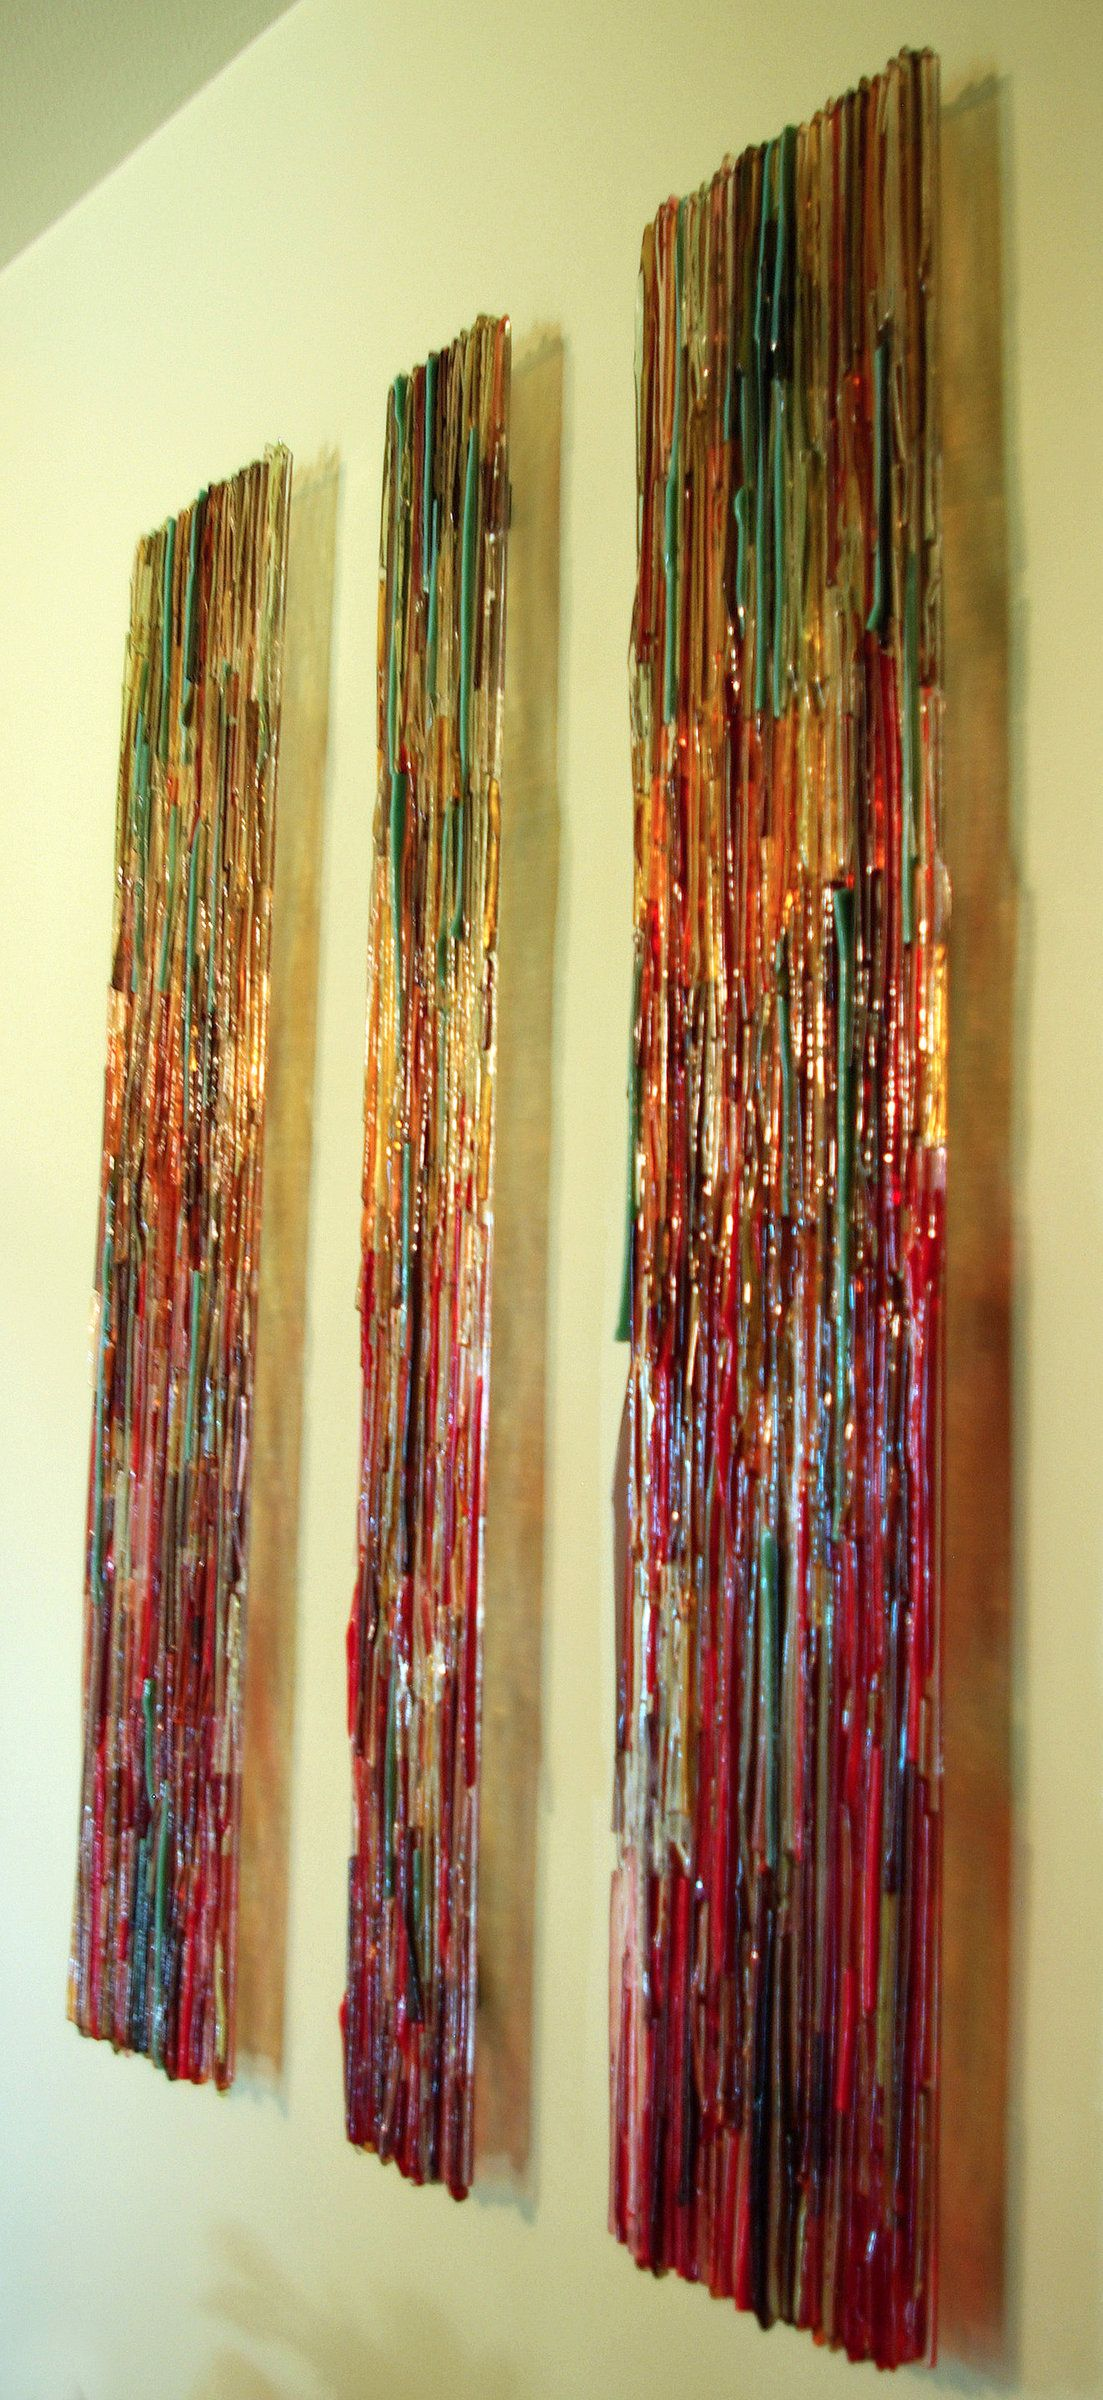 Artful Home Transpire Wall Panels Sarinda Jones Art Glass Wall Art Artful